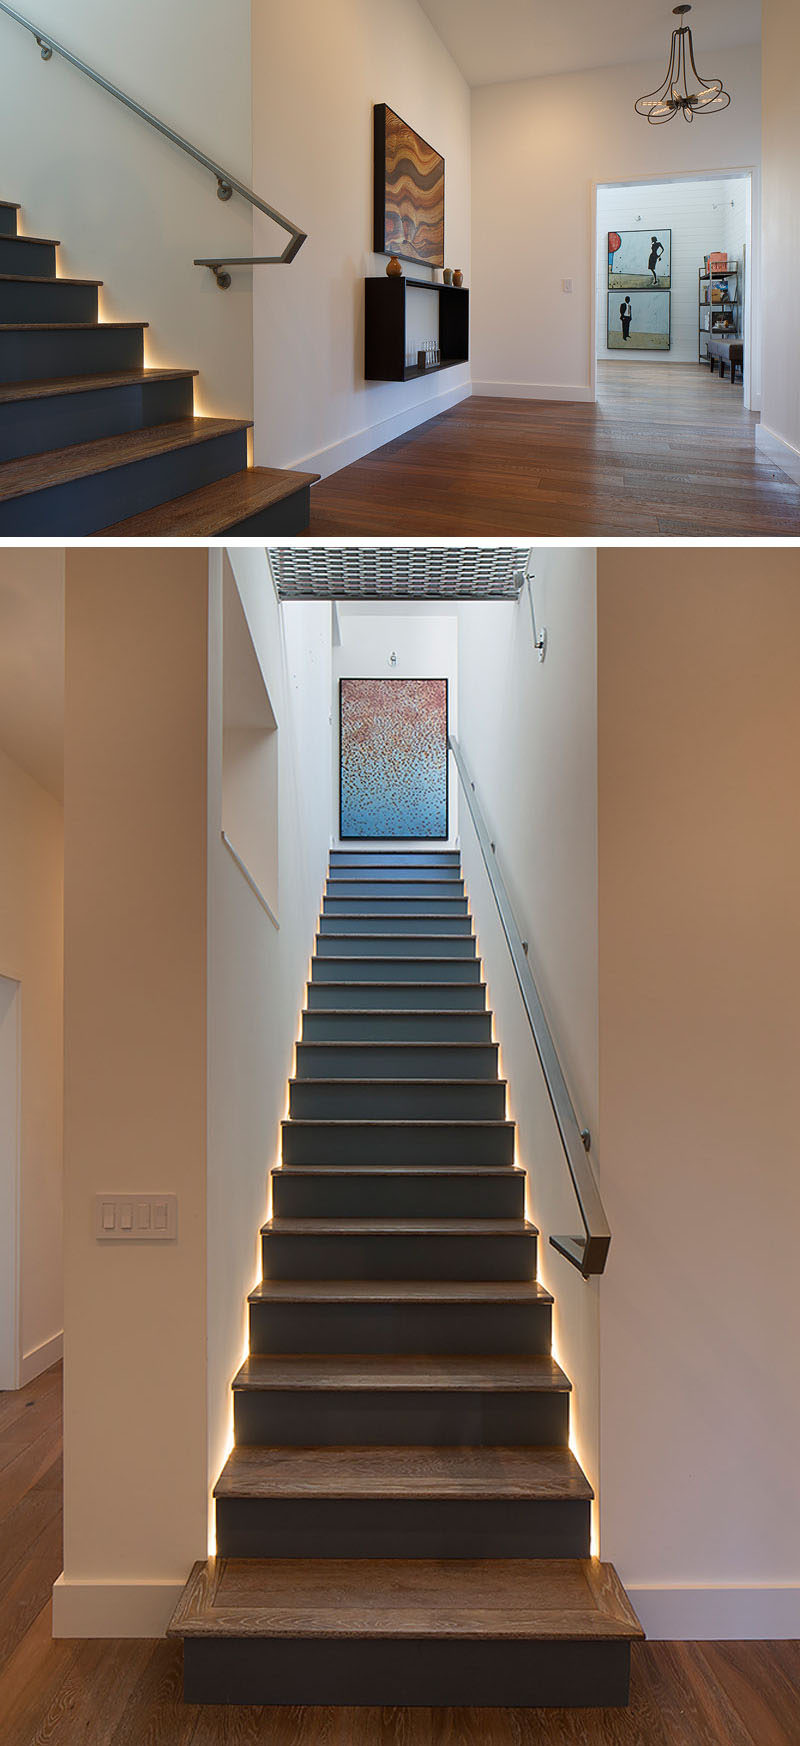 Dark wood stairs lead to the upper floor of this modern house. Hidden lighting runs along either side of the stair treads, highlighting the design. #Stairs #Lighting #WoodStairs